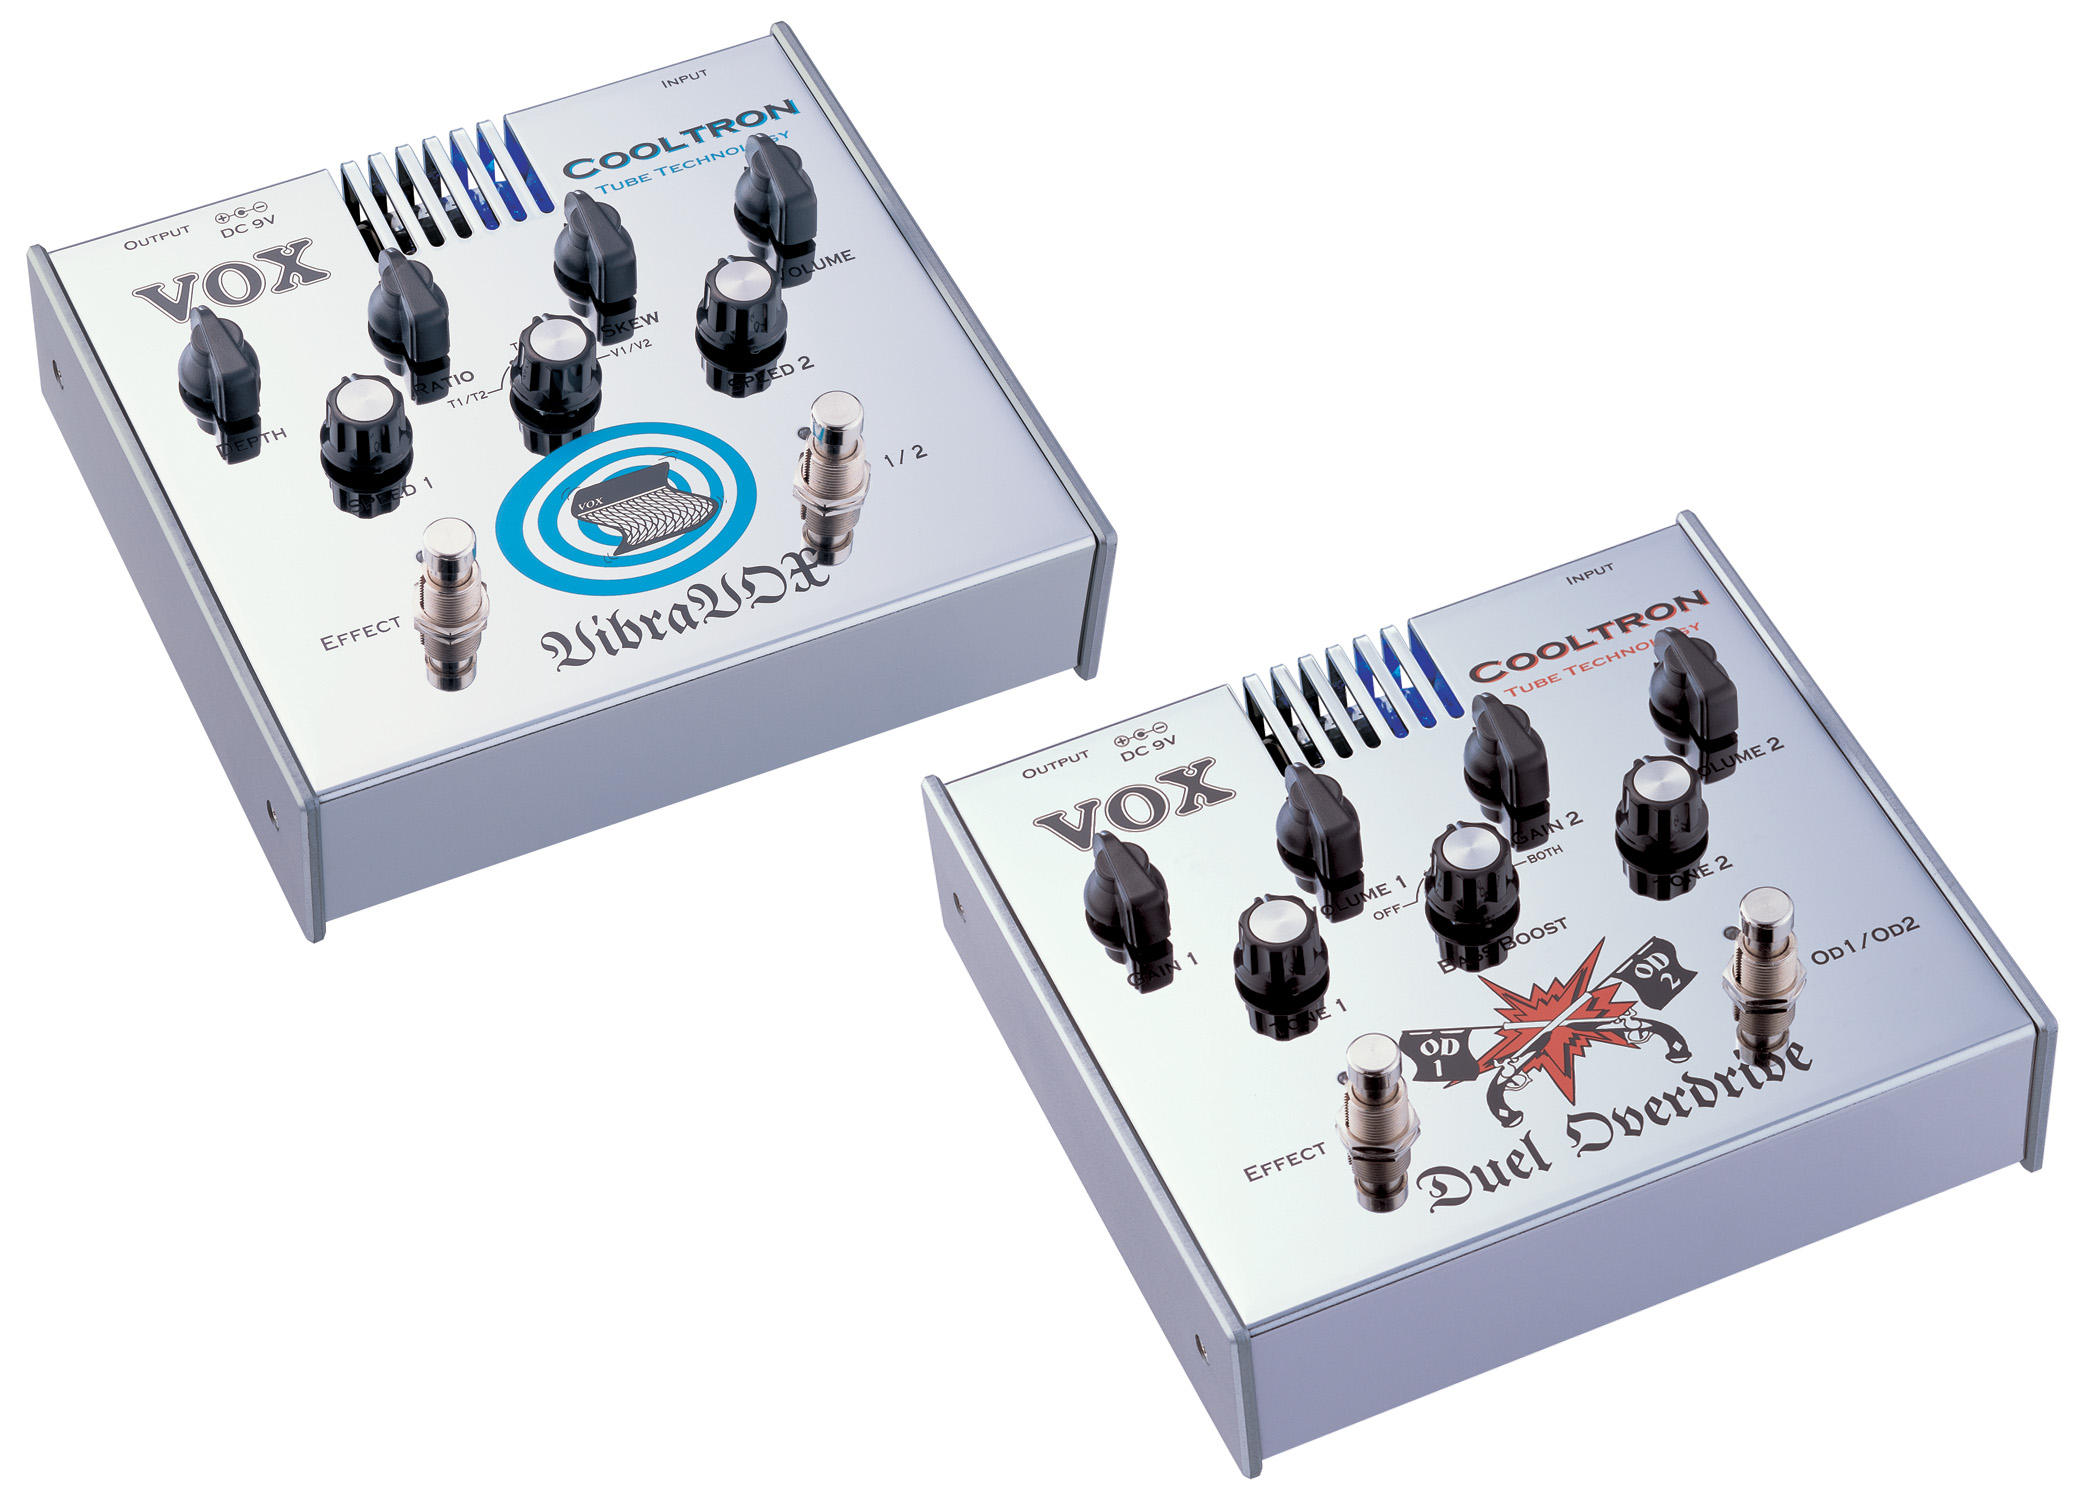 VOX COOLTRON Tube-Driven Effects Pedals